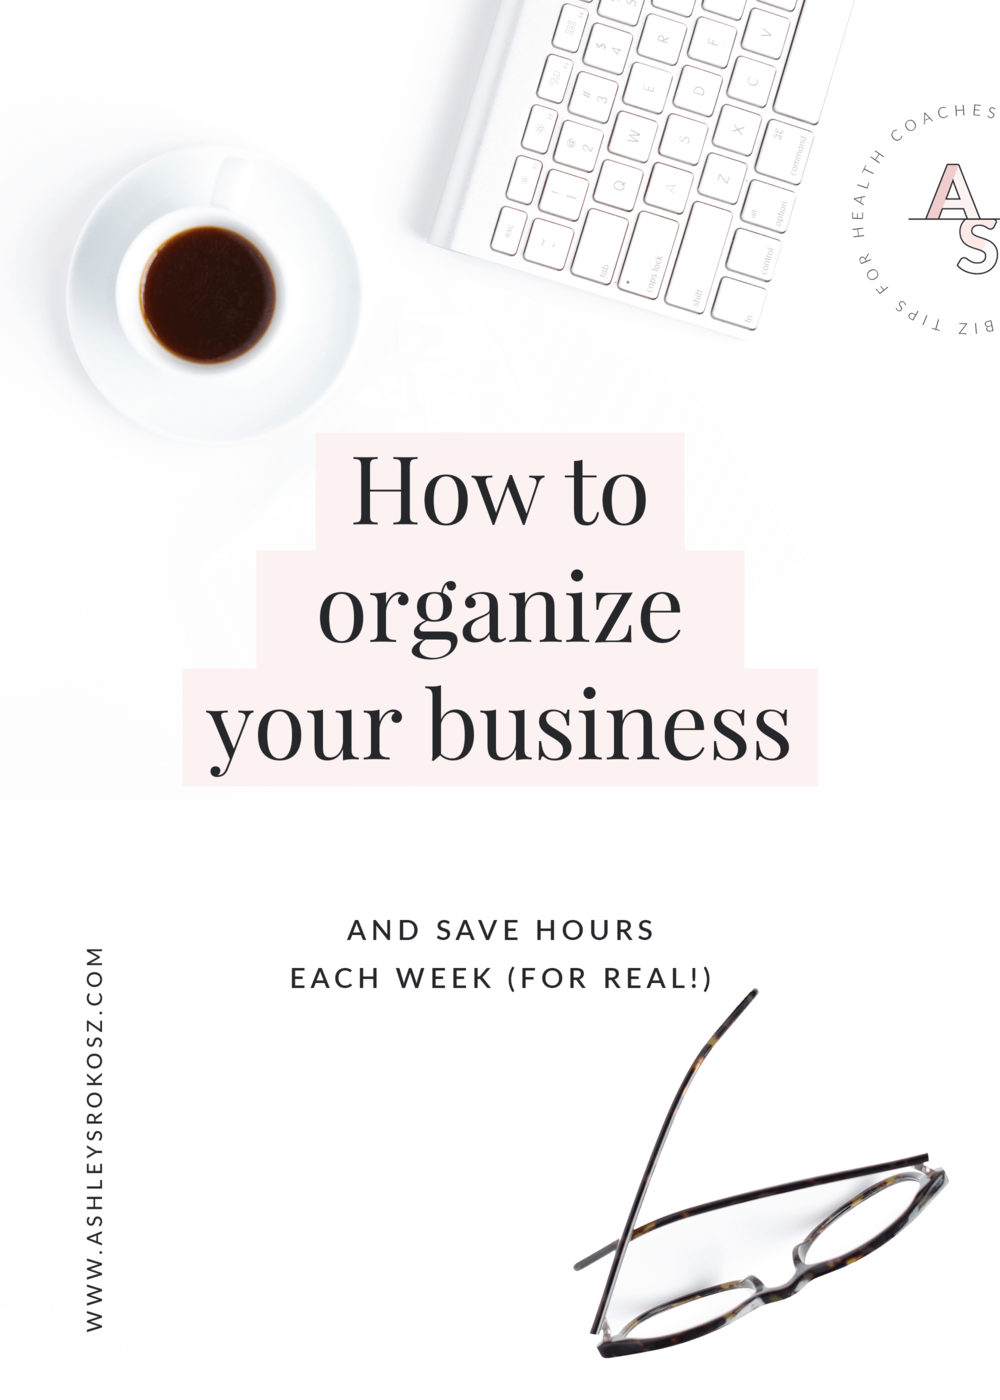 "Are you a nutritionist or holistic health coach who feels totally disorganized or like your week is eaten up with admin tasks, email, and ""busy work""? Wait, there's a way to organize your business to save you 5-10 hours each week (no joke!)! Click here to learn how to organize your business to save time so you can work on the big projects that'll actually grow your business. #healthcoach #healthcoachbusiness #nutritionist #nutritionbusiness #becomeahealthcoach #yogateacher #naturopath"